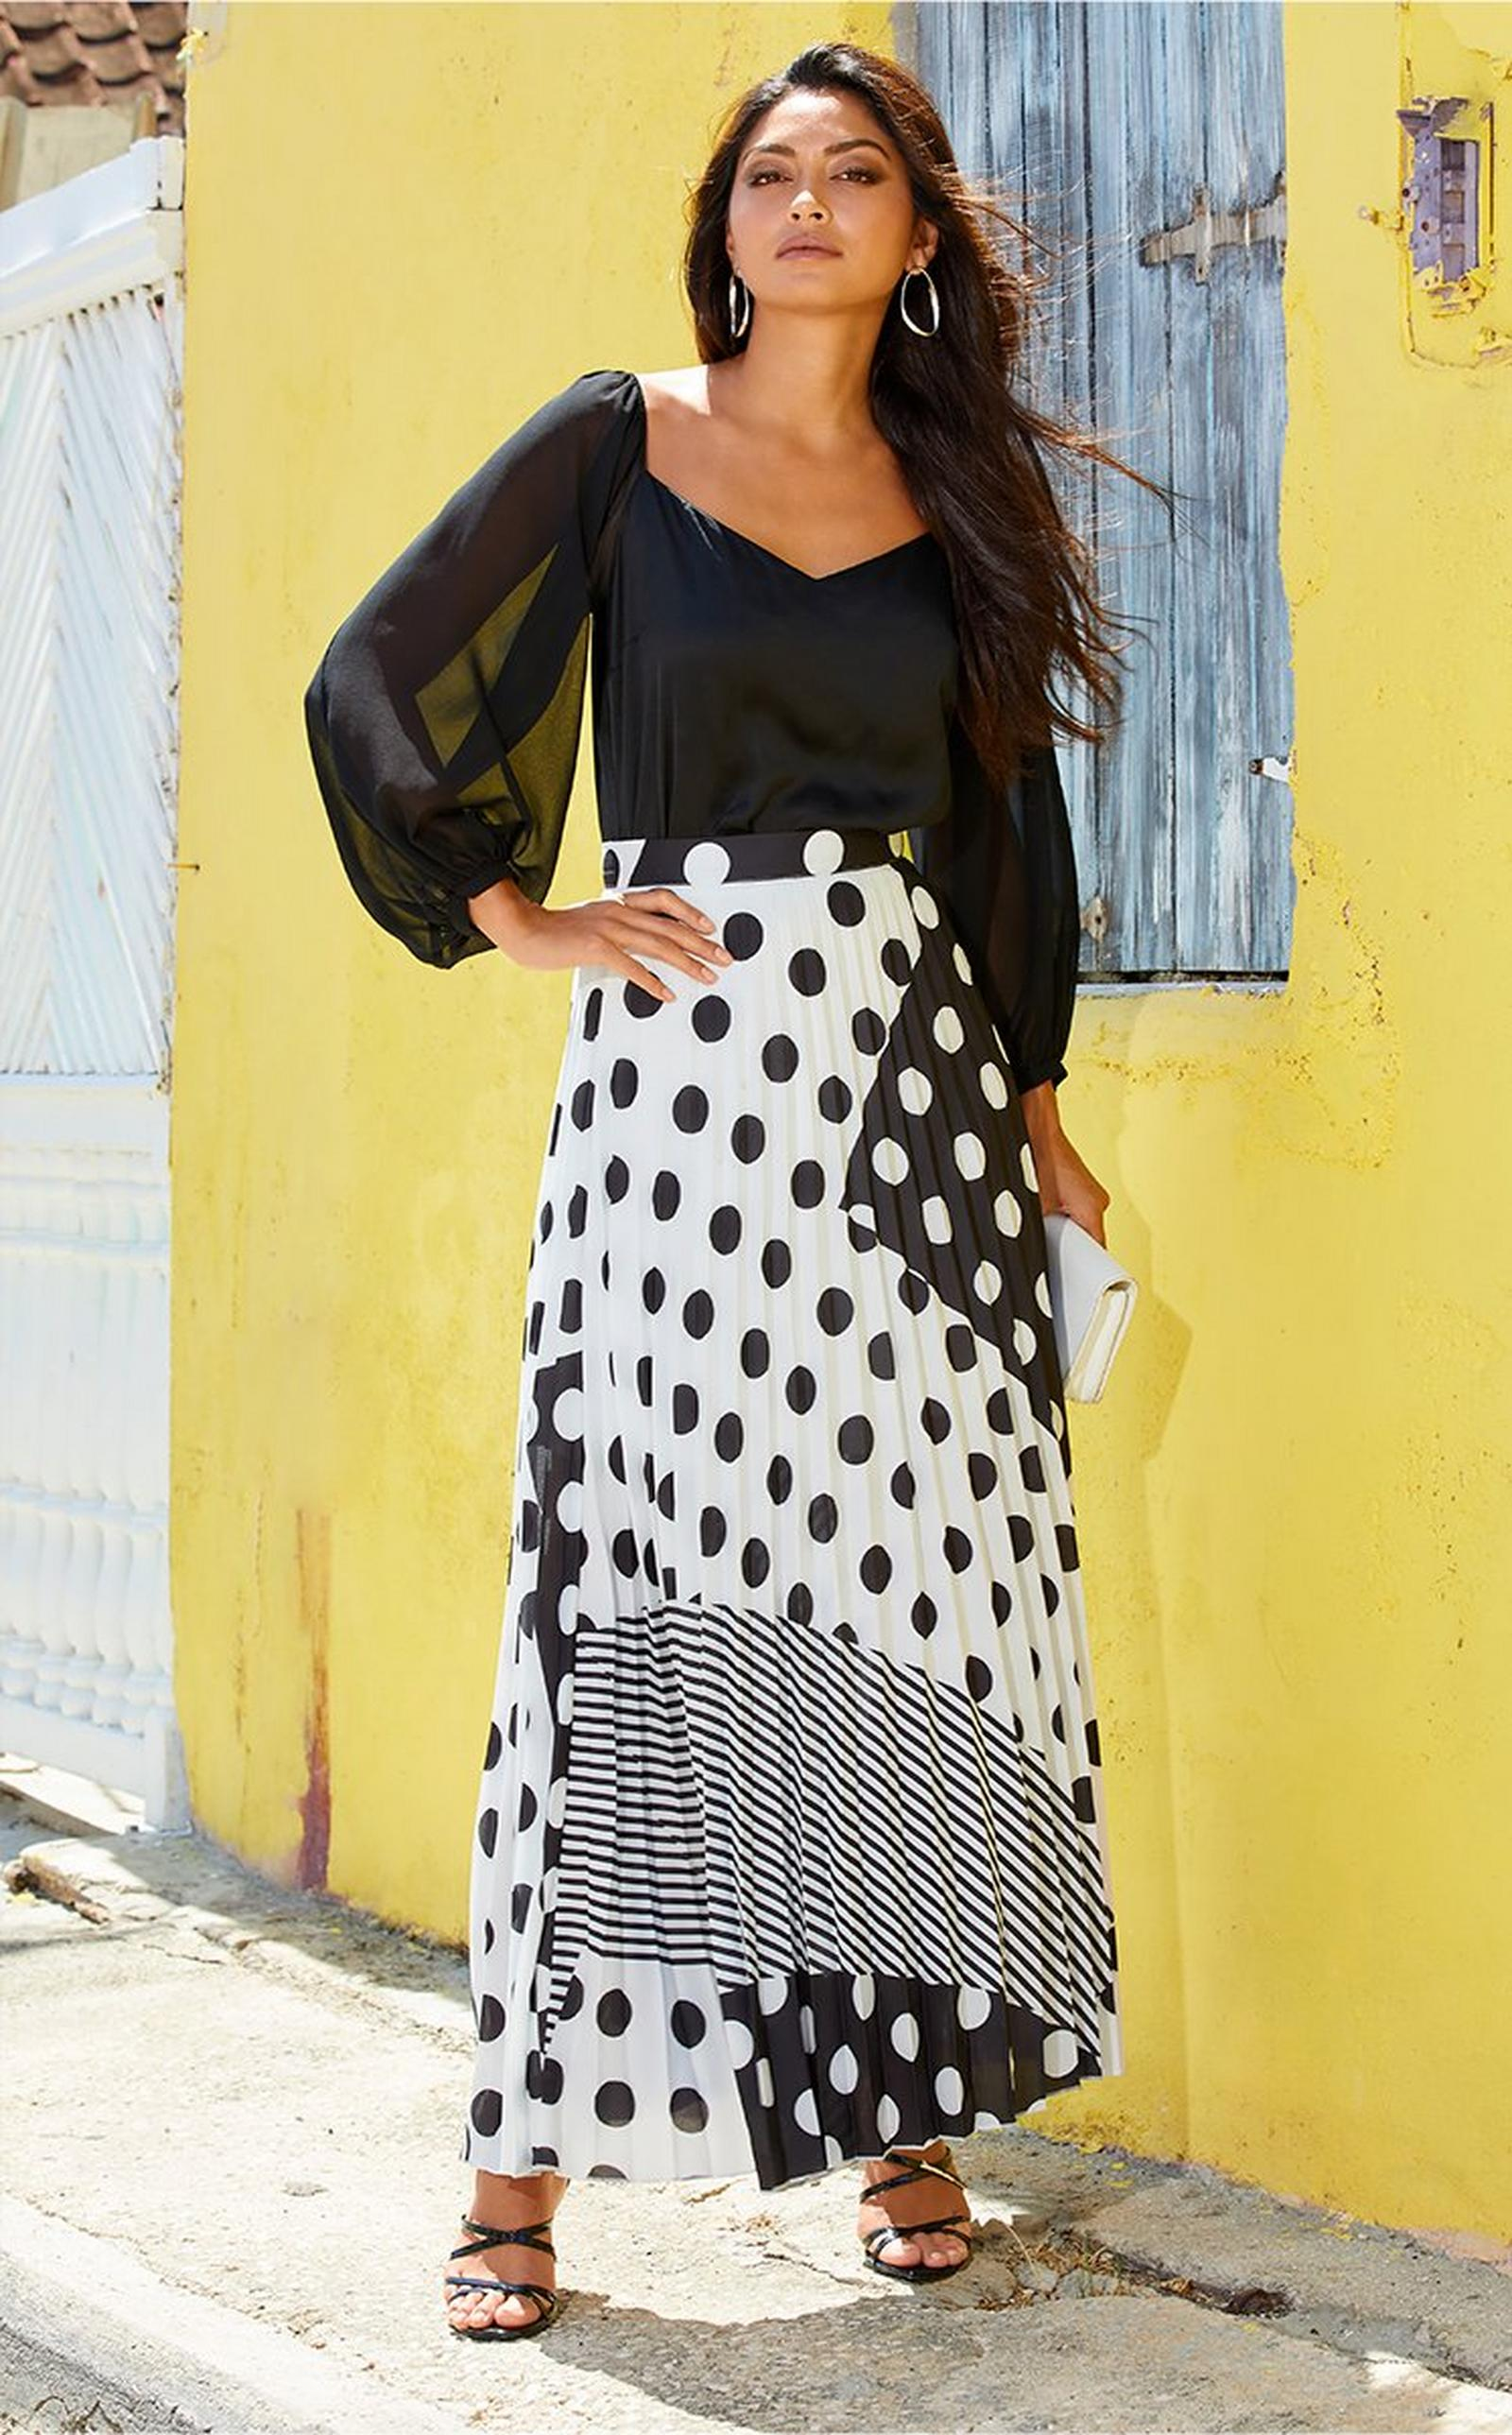 model wearing a black illusion sleeve top with a mixed print black and white maxi skirt and black strappy heels.